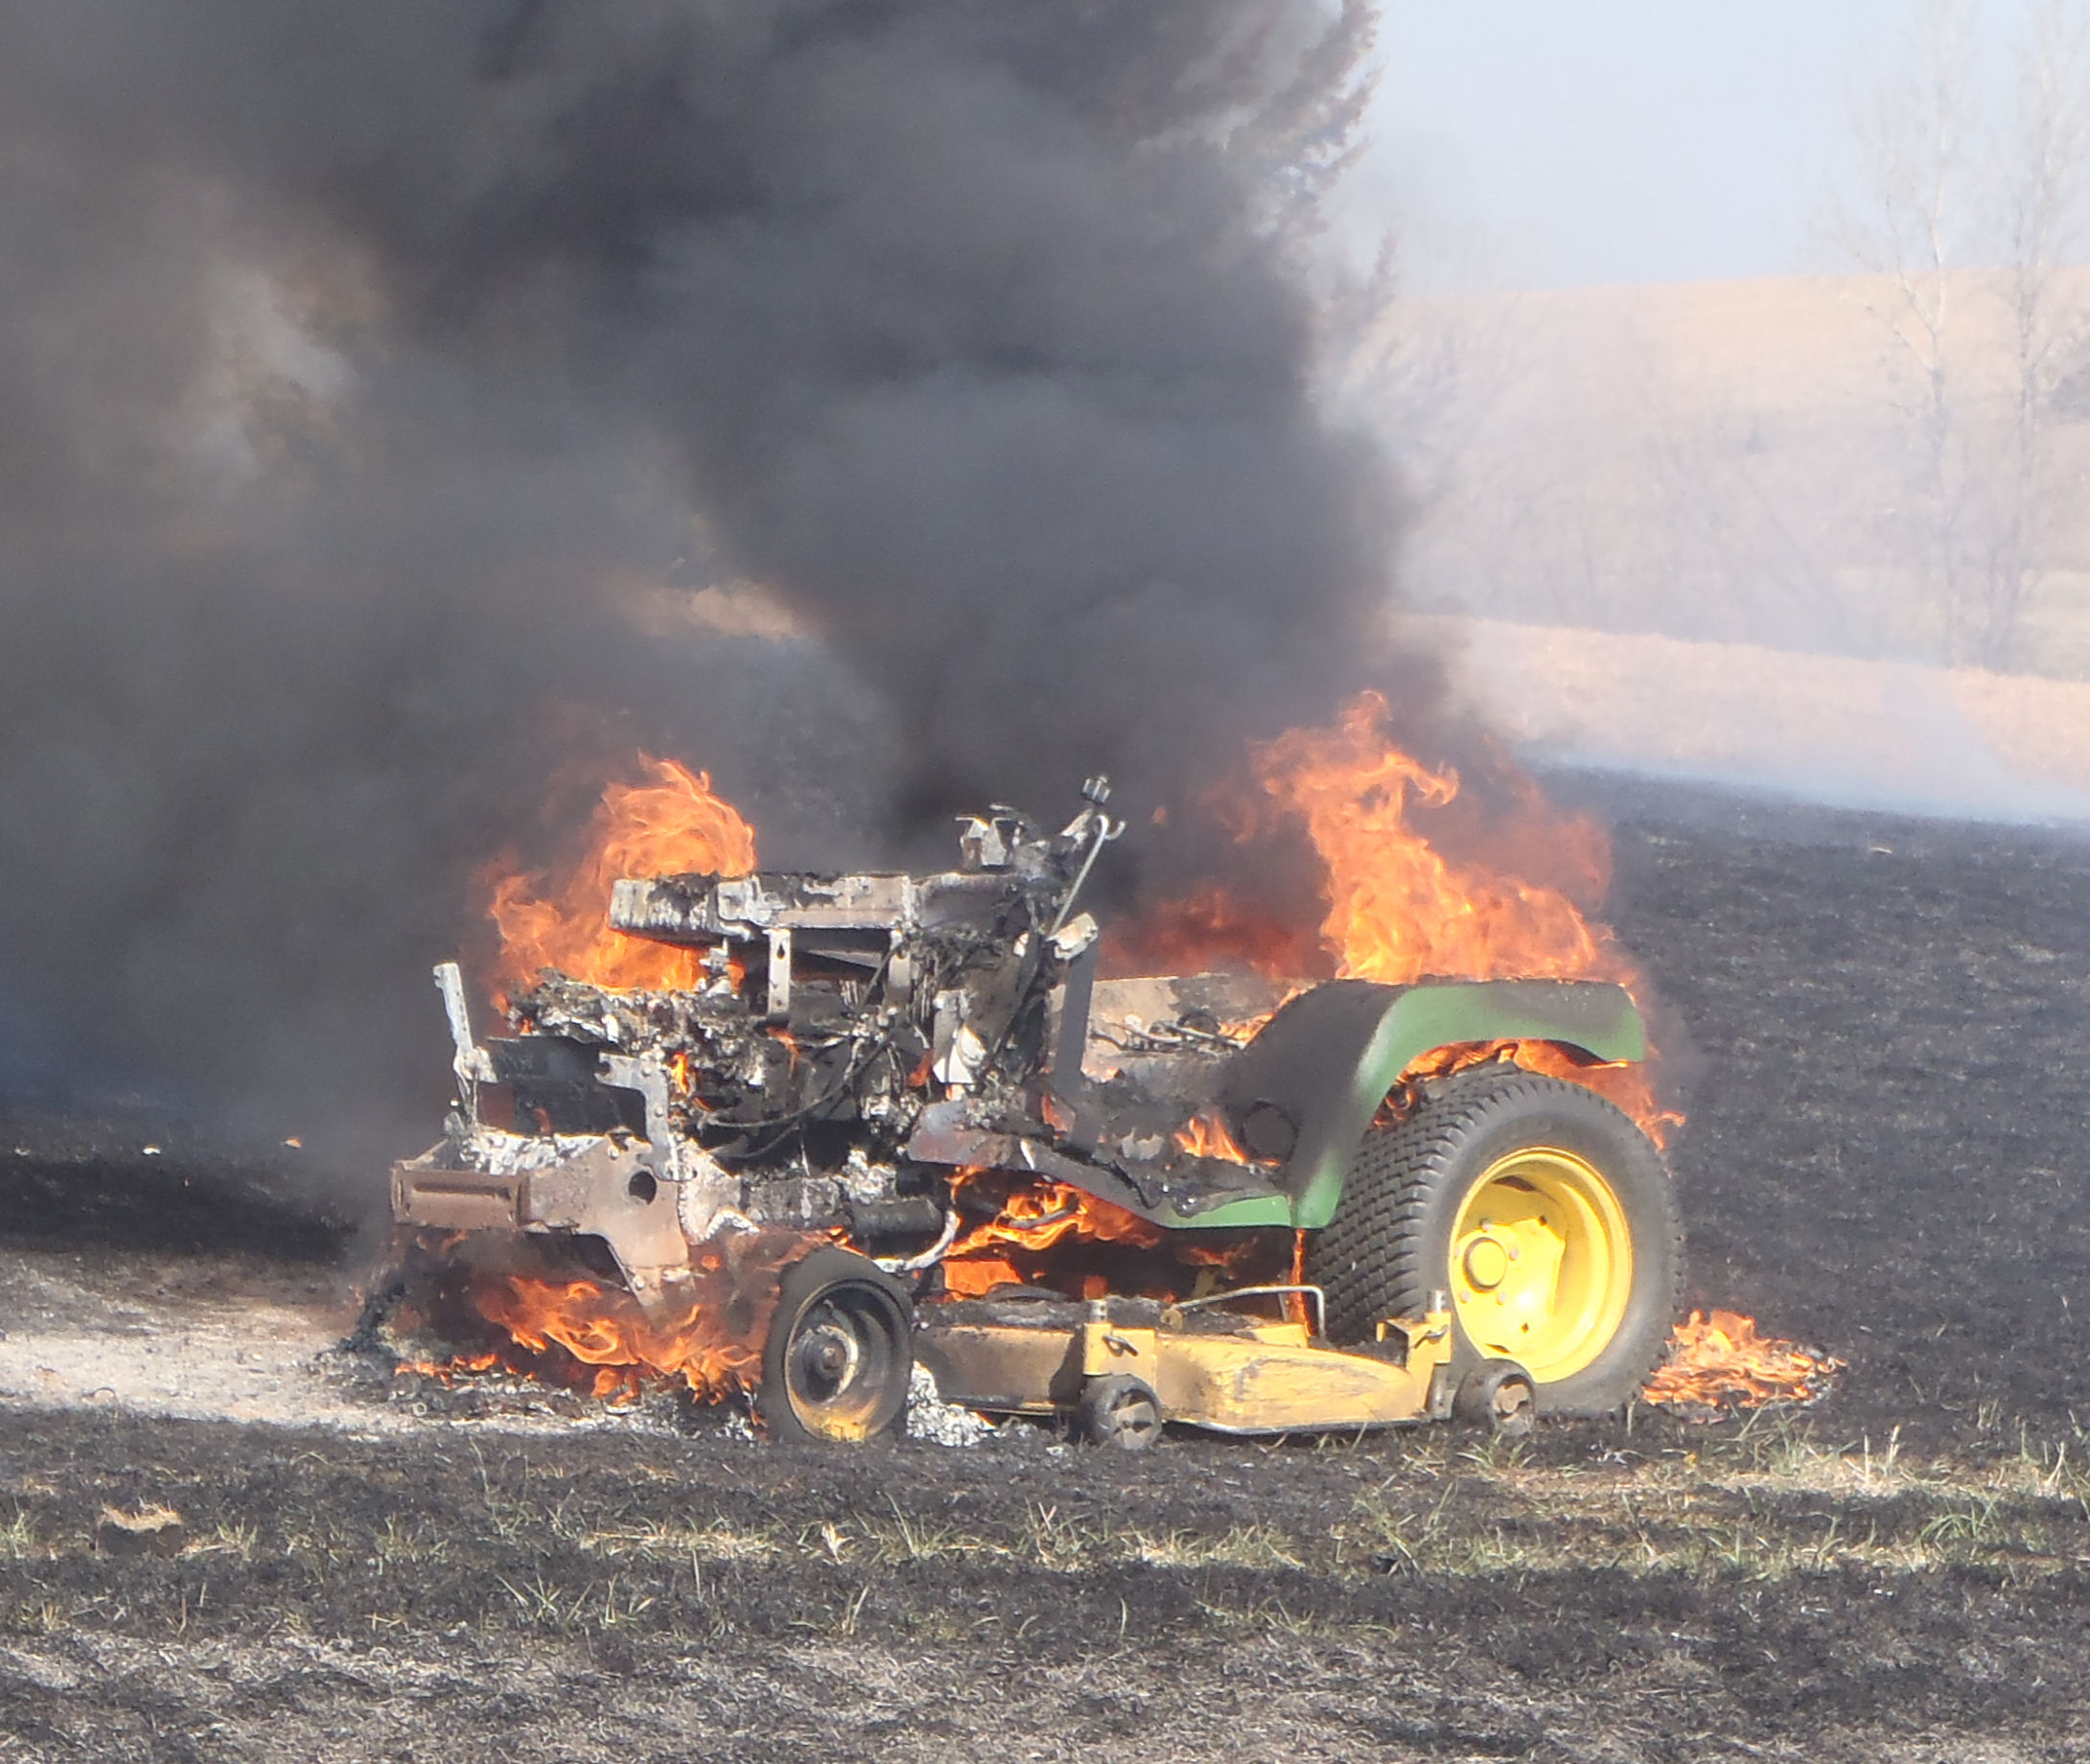 Fire Destroys Lawn Tractor